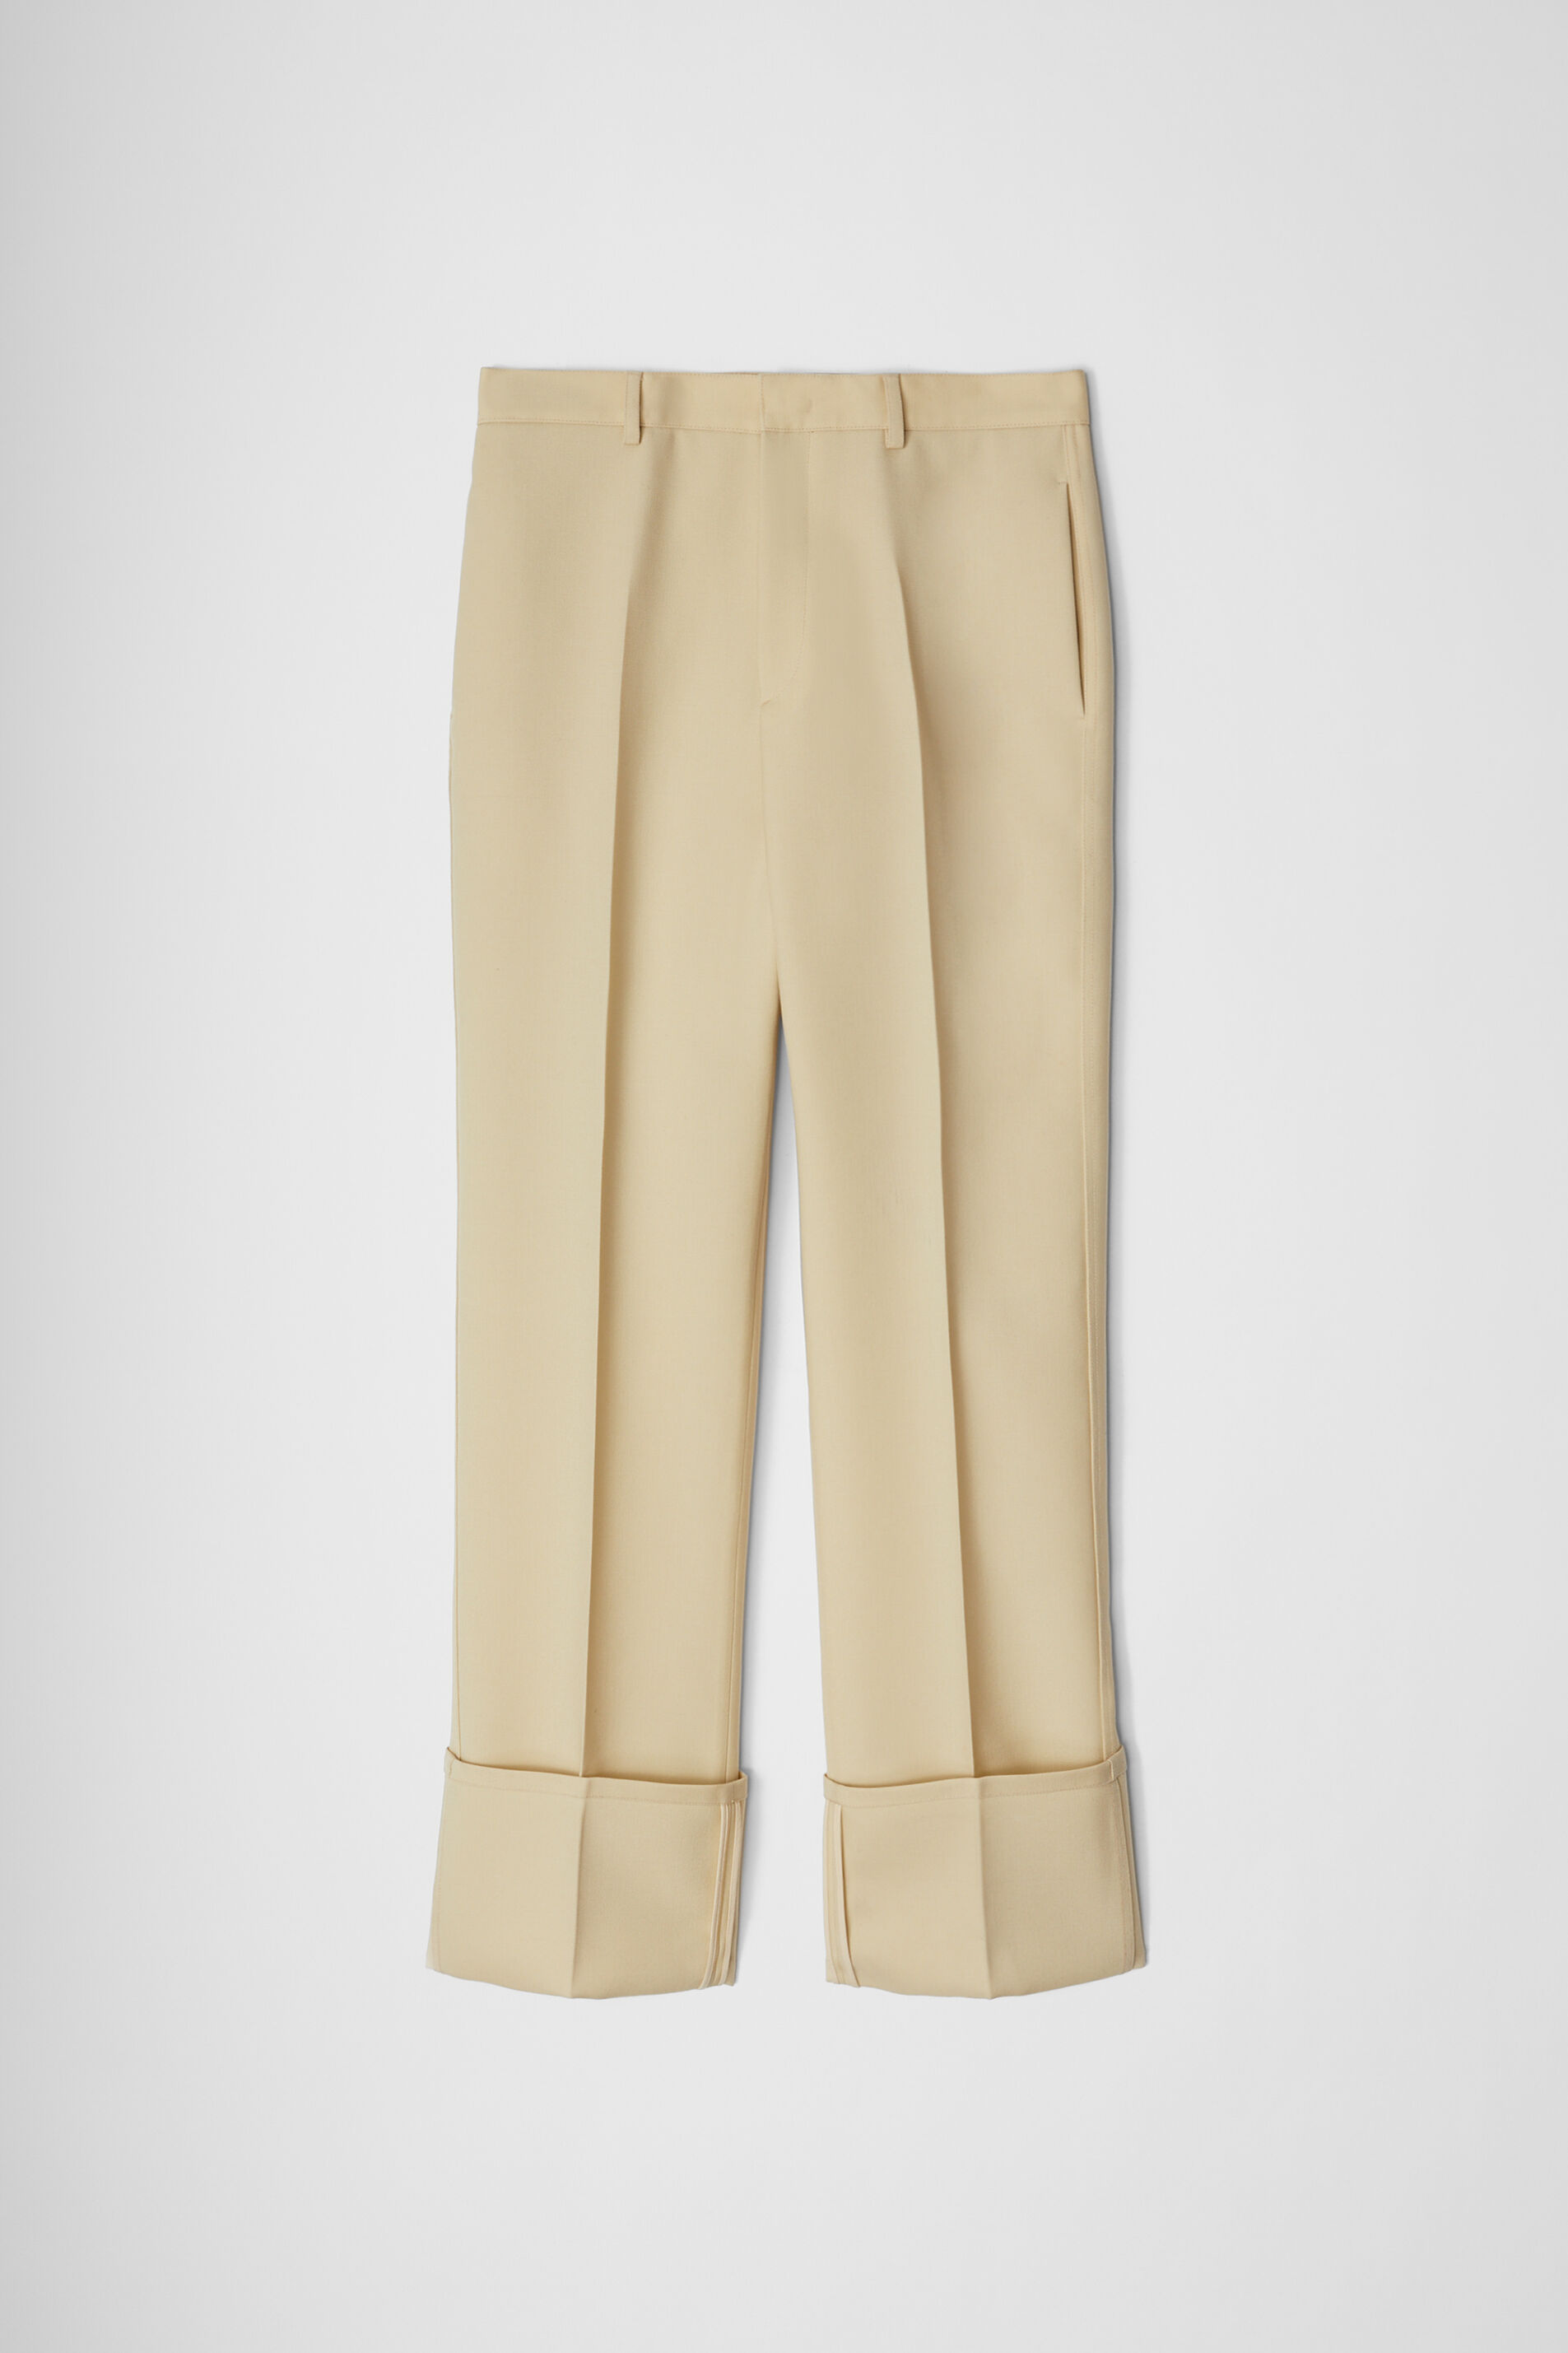 Trousers, pastel green, large